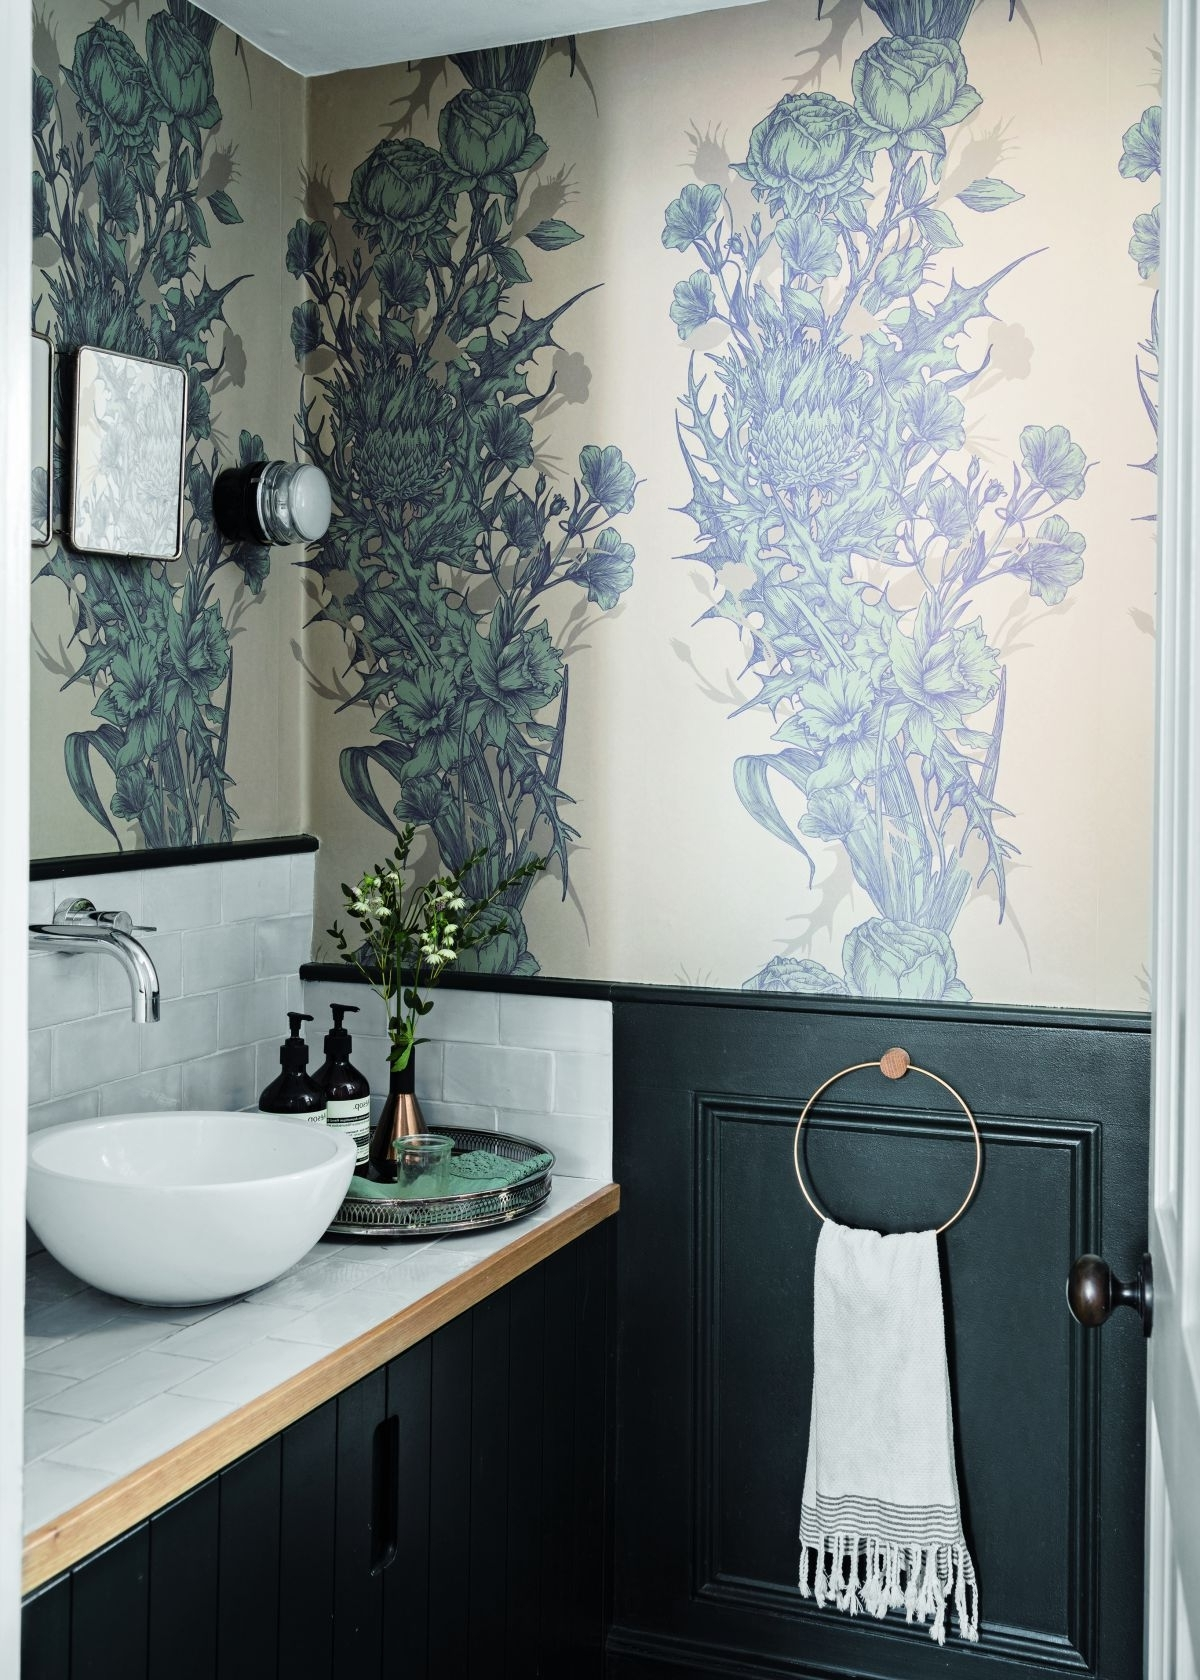 Modern Cloakroom Ideas: Cloakrooms & Powder Rooms Decor Downstairs Bathroom Wallpaper